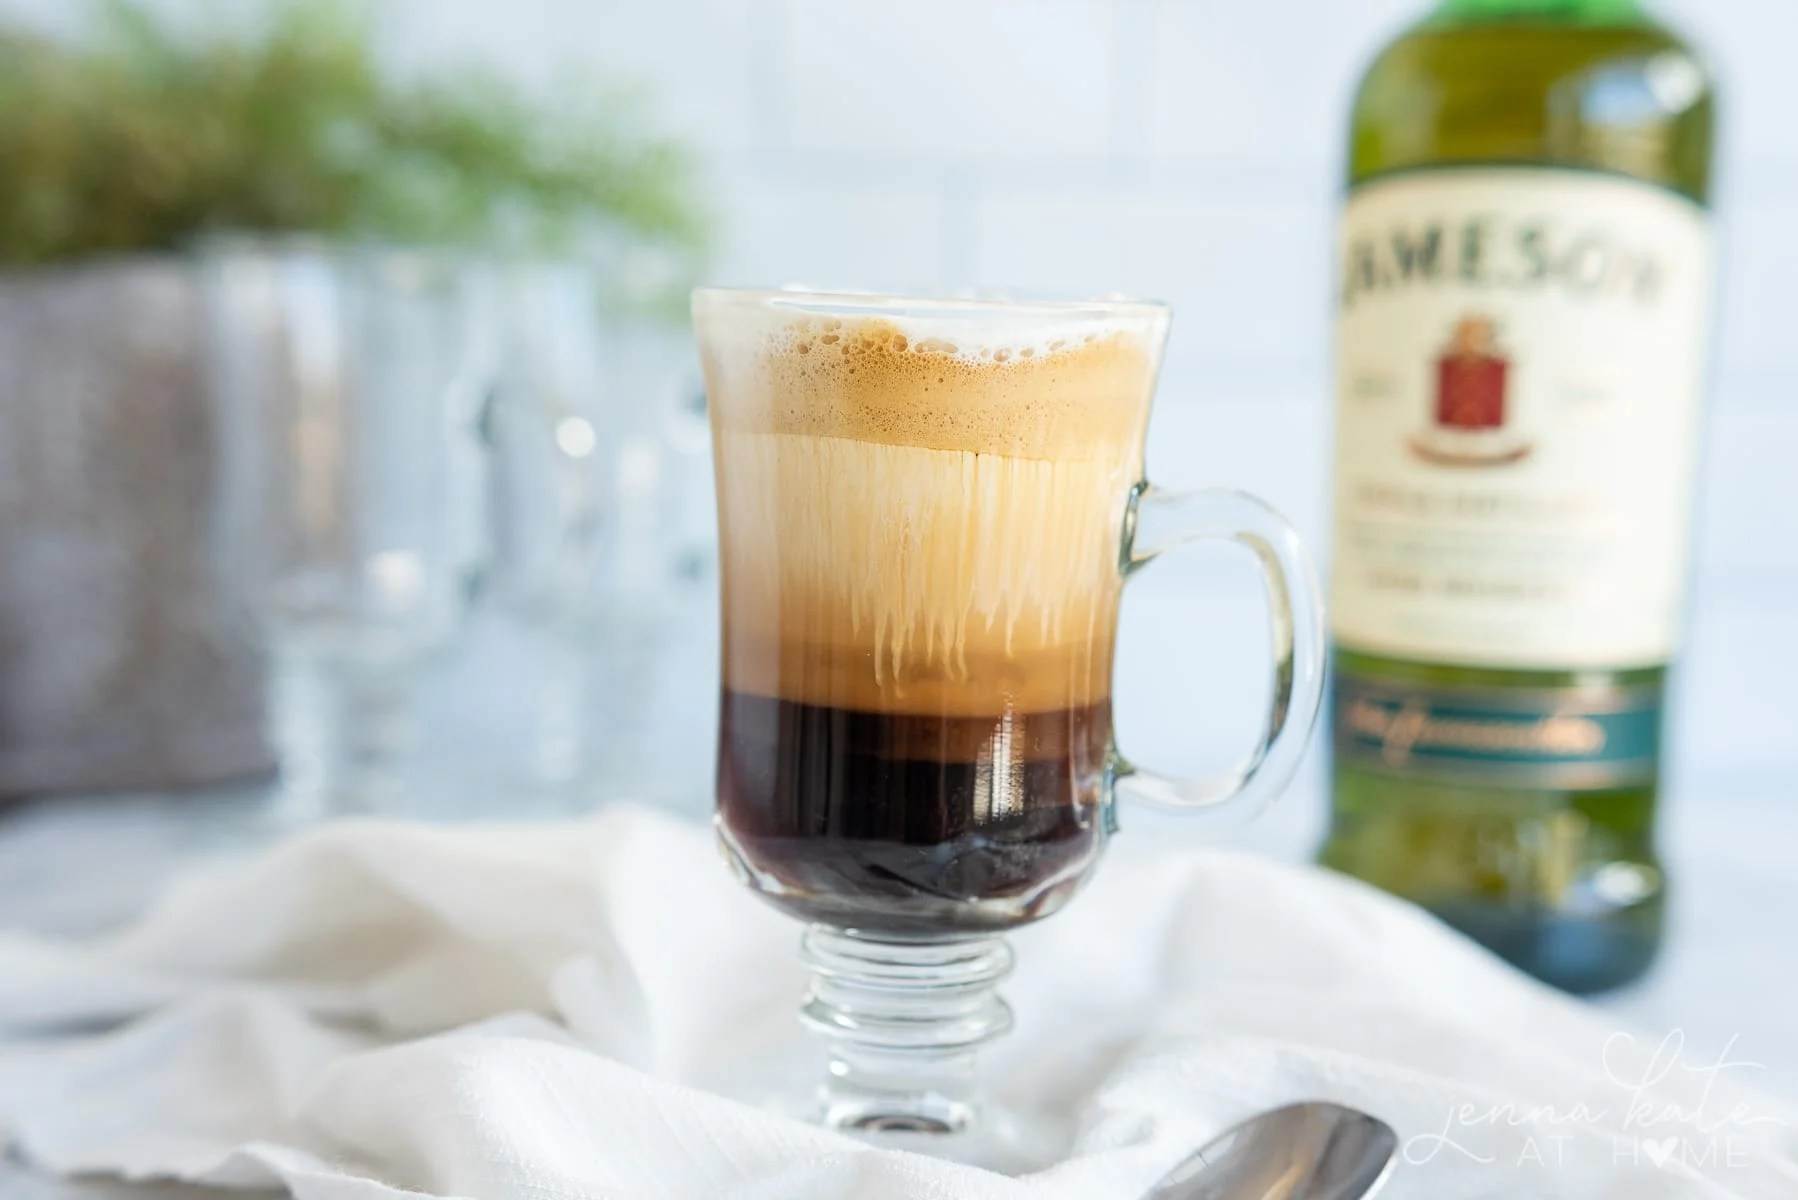 Glass of Irish coffee with a bottle of Jameson Irish whiskey in the background